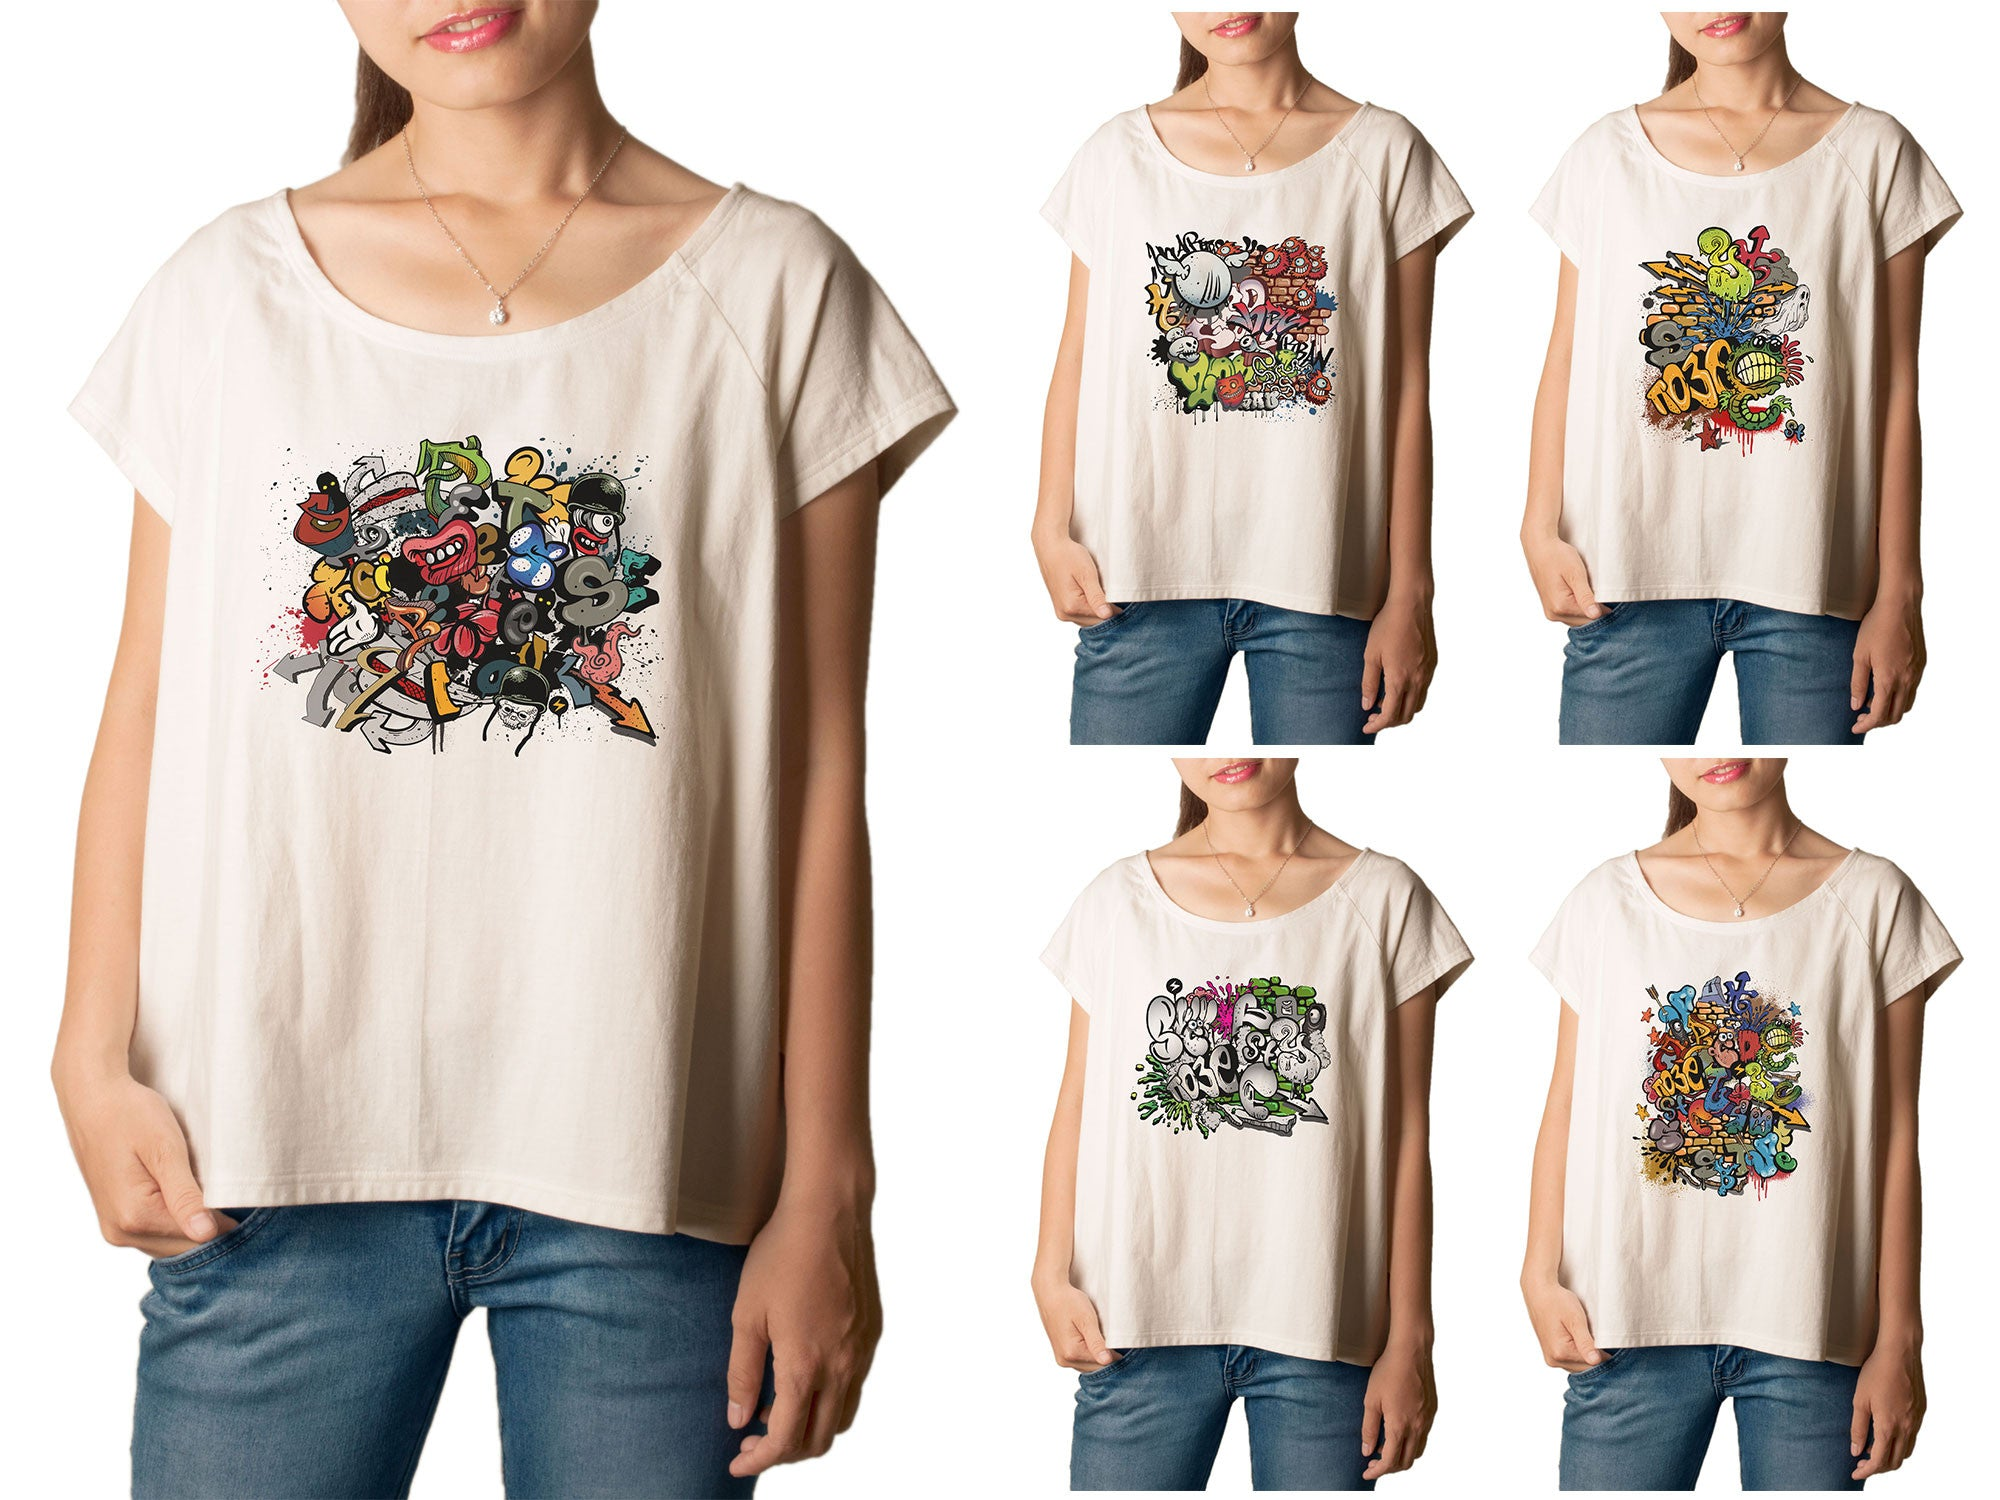 Women's Graffiti Printed cotton T-shirt  Tee WTS_01